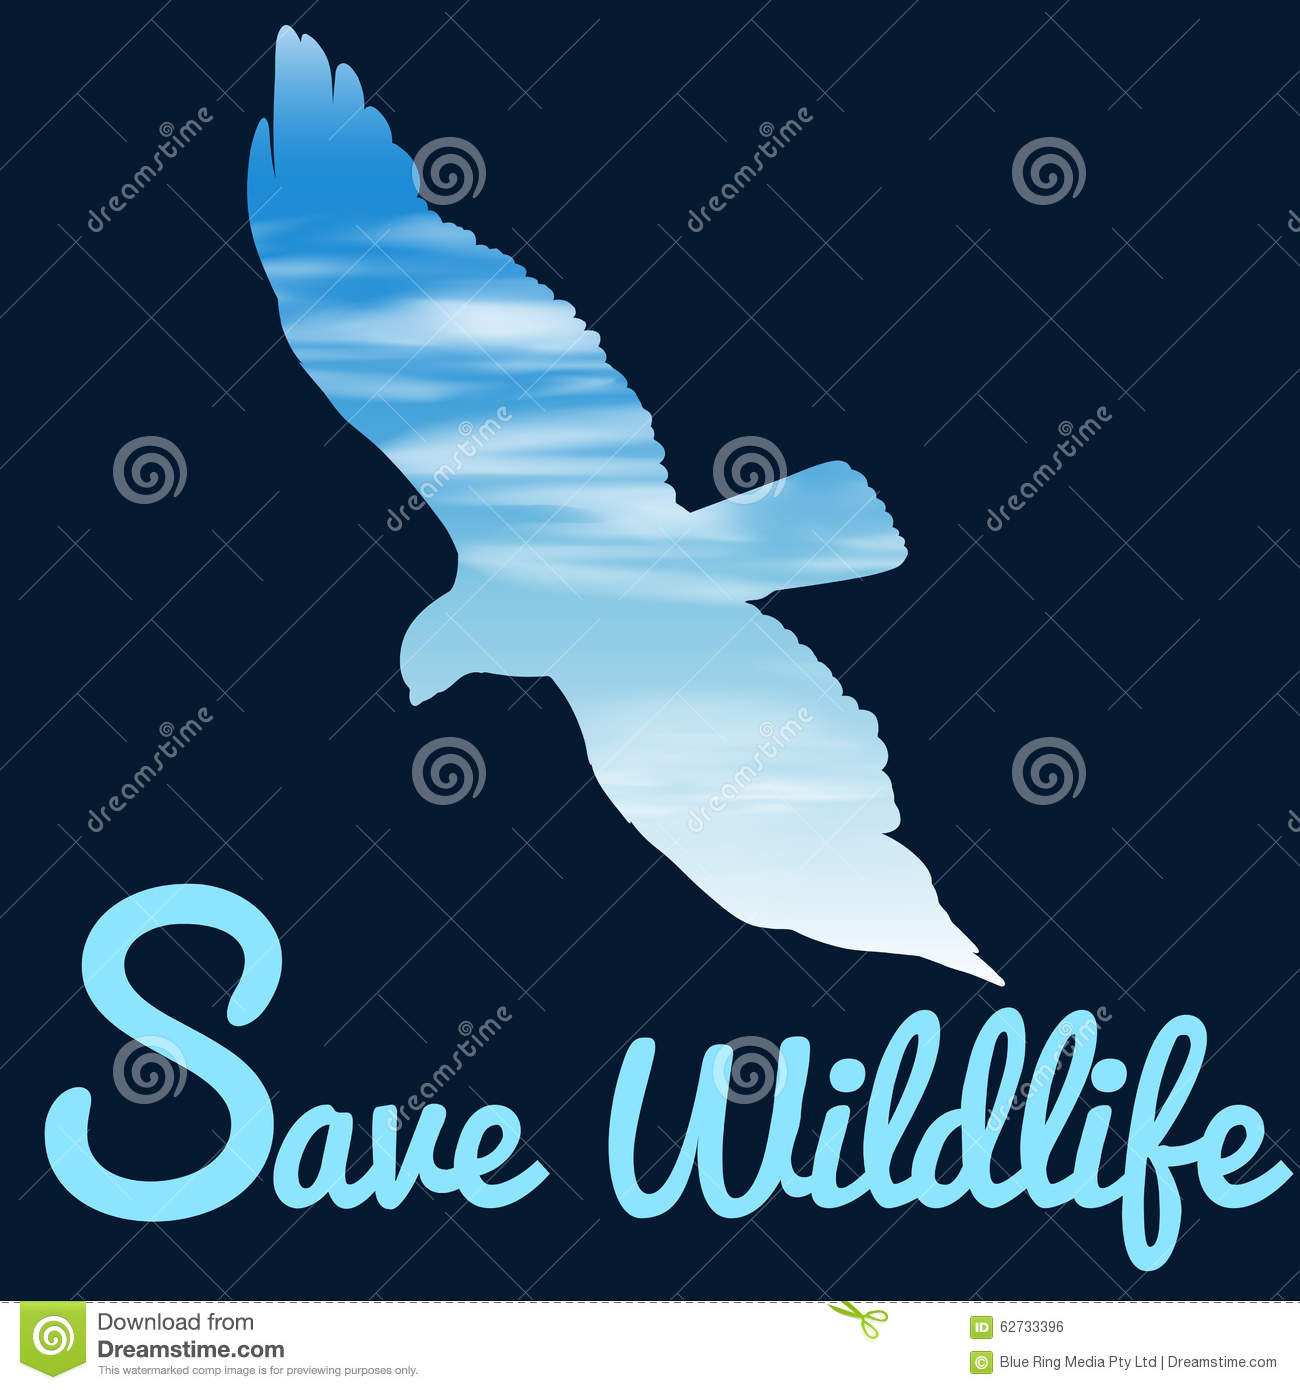 Save Wildlife Theme With Bird Flying Stock Vector - Image: 62733396